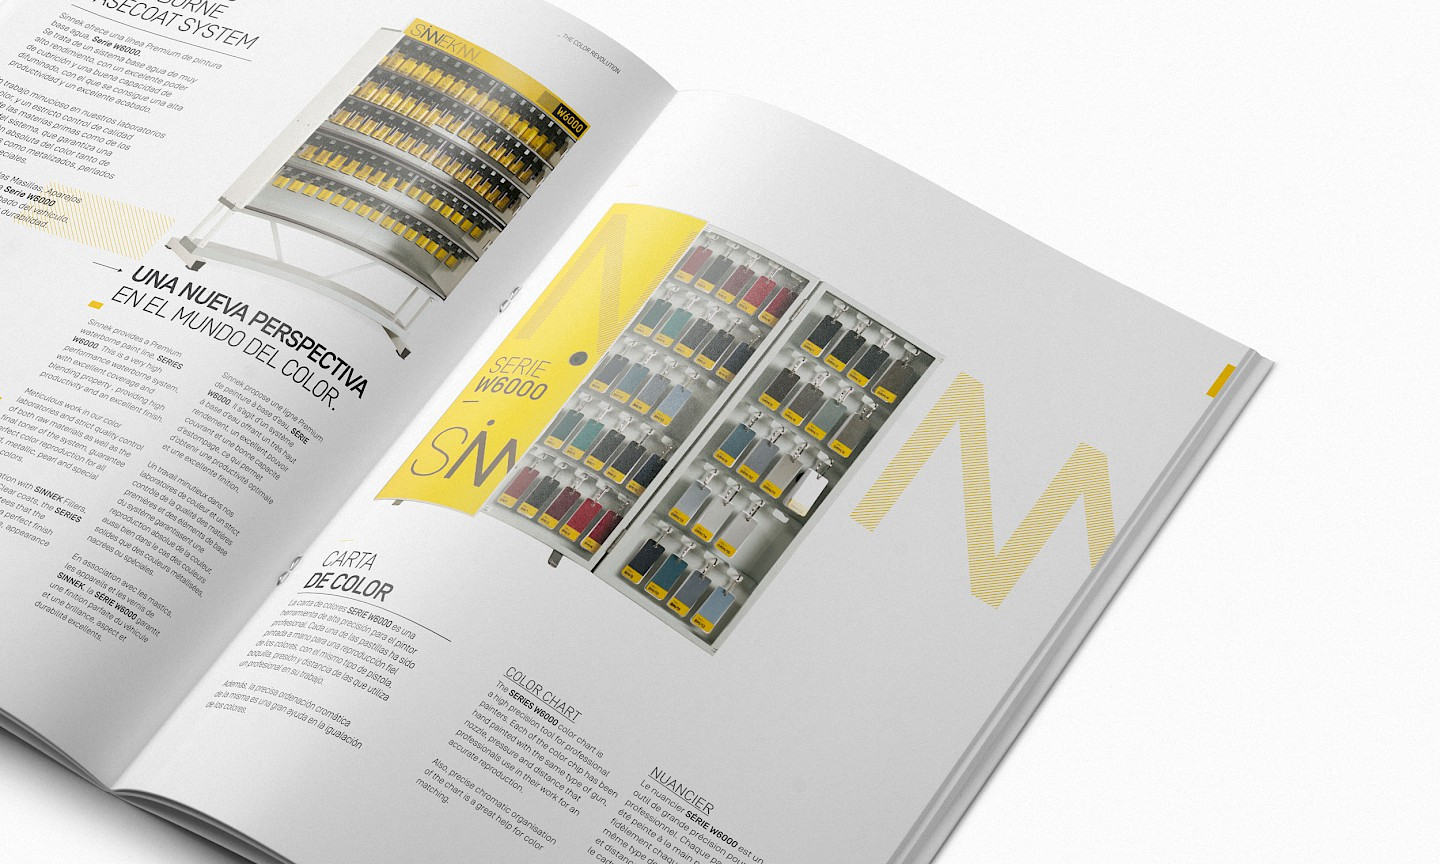 move catalogo03 sinnek branding